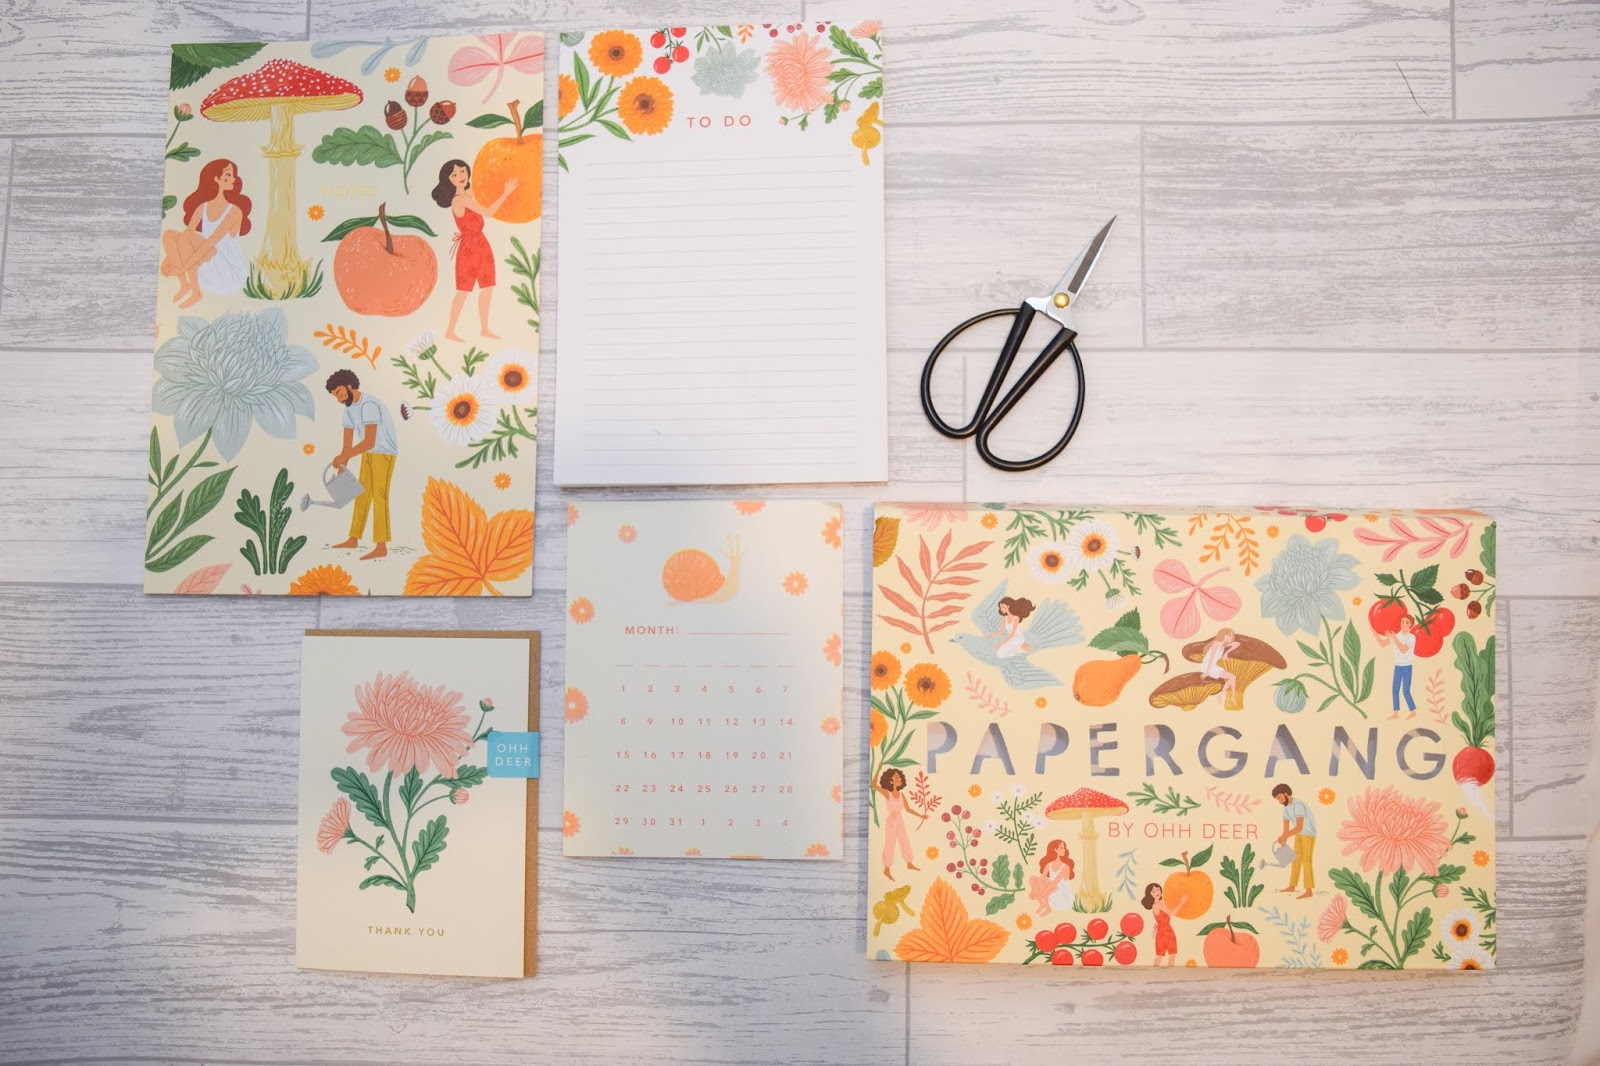 An overview of the contents of a stationery subscription box including a notebook, thank you card, month card, list pad and scissors laying on a white wooden background.